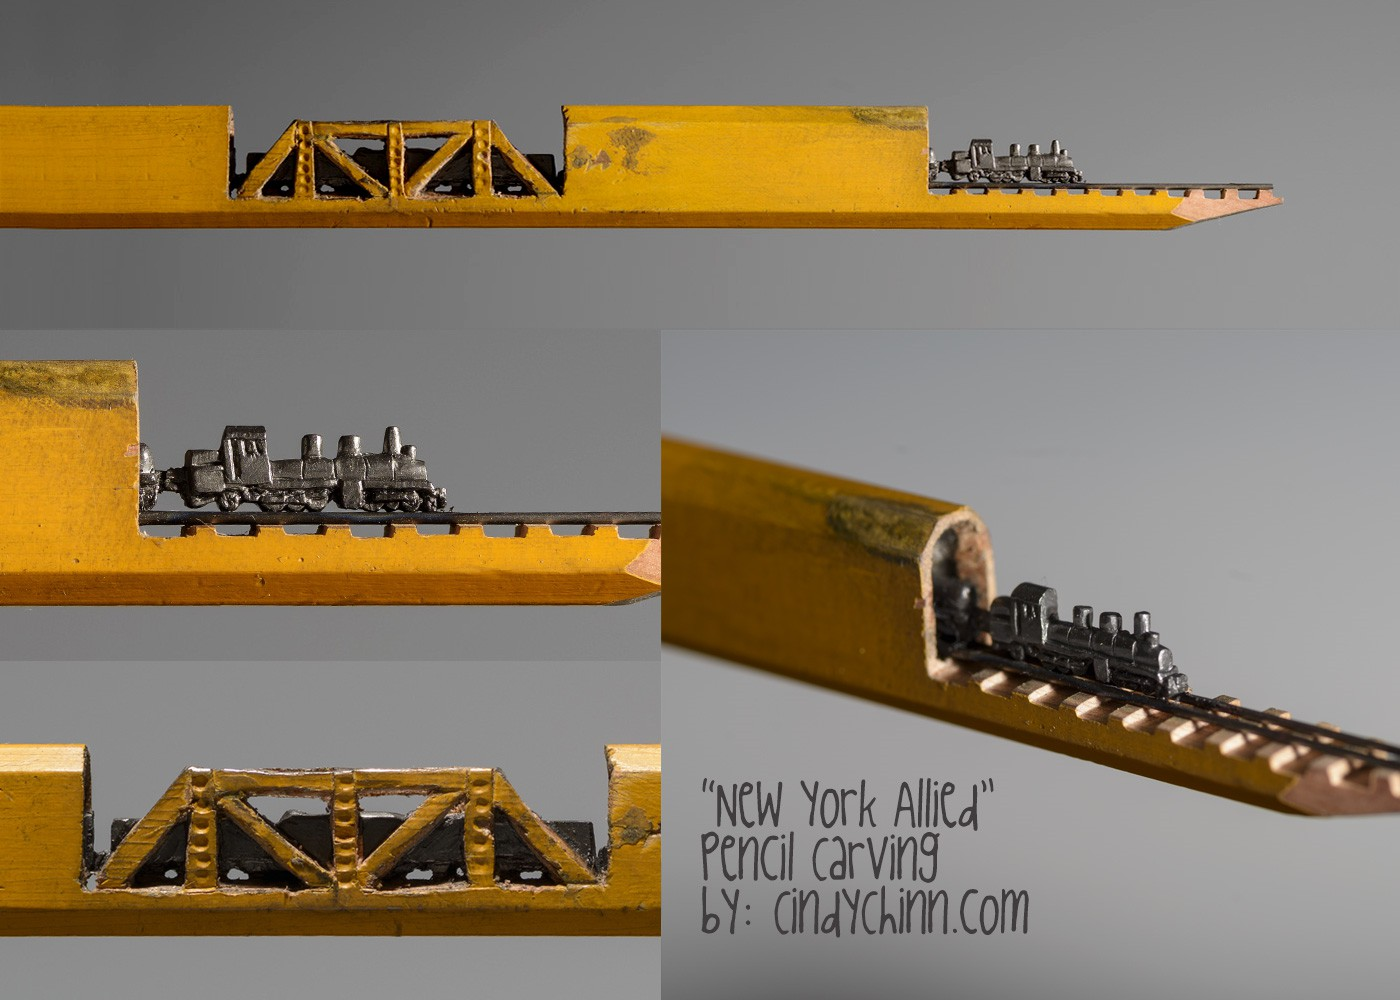 13-New-York-Allied-Train-Cindy-Chinn-Miniature-Carvings-of-Pencil-Graphite-www-designstack-co